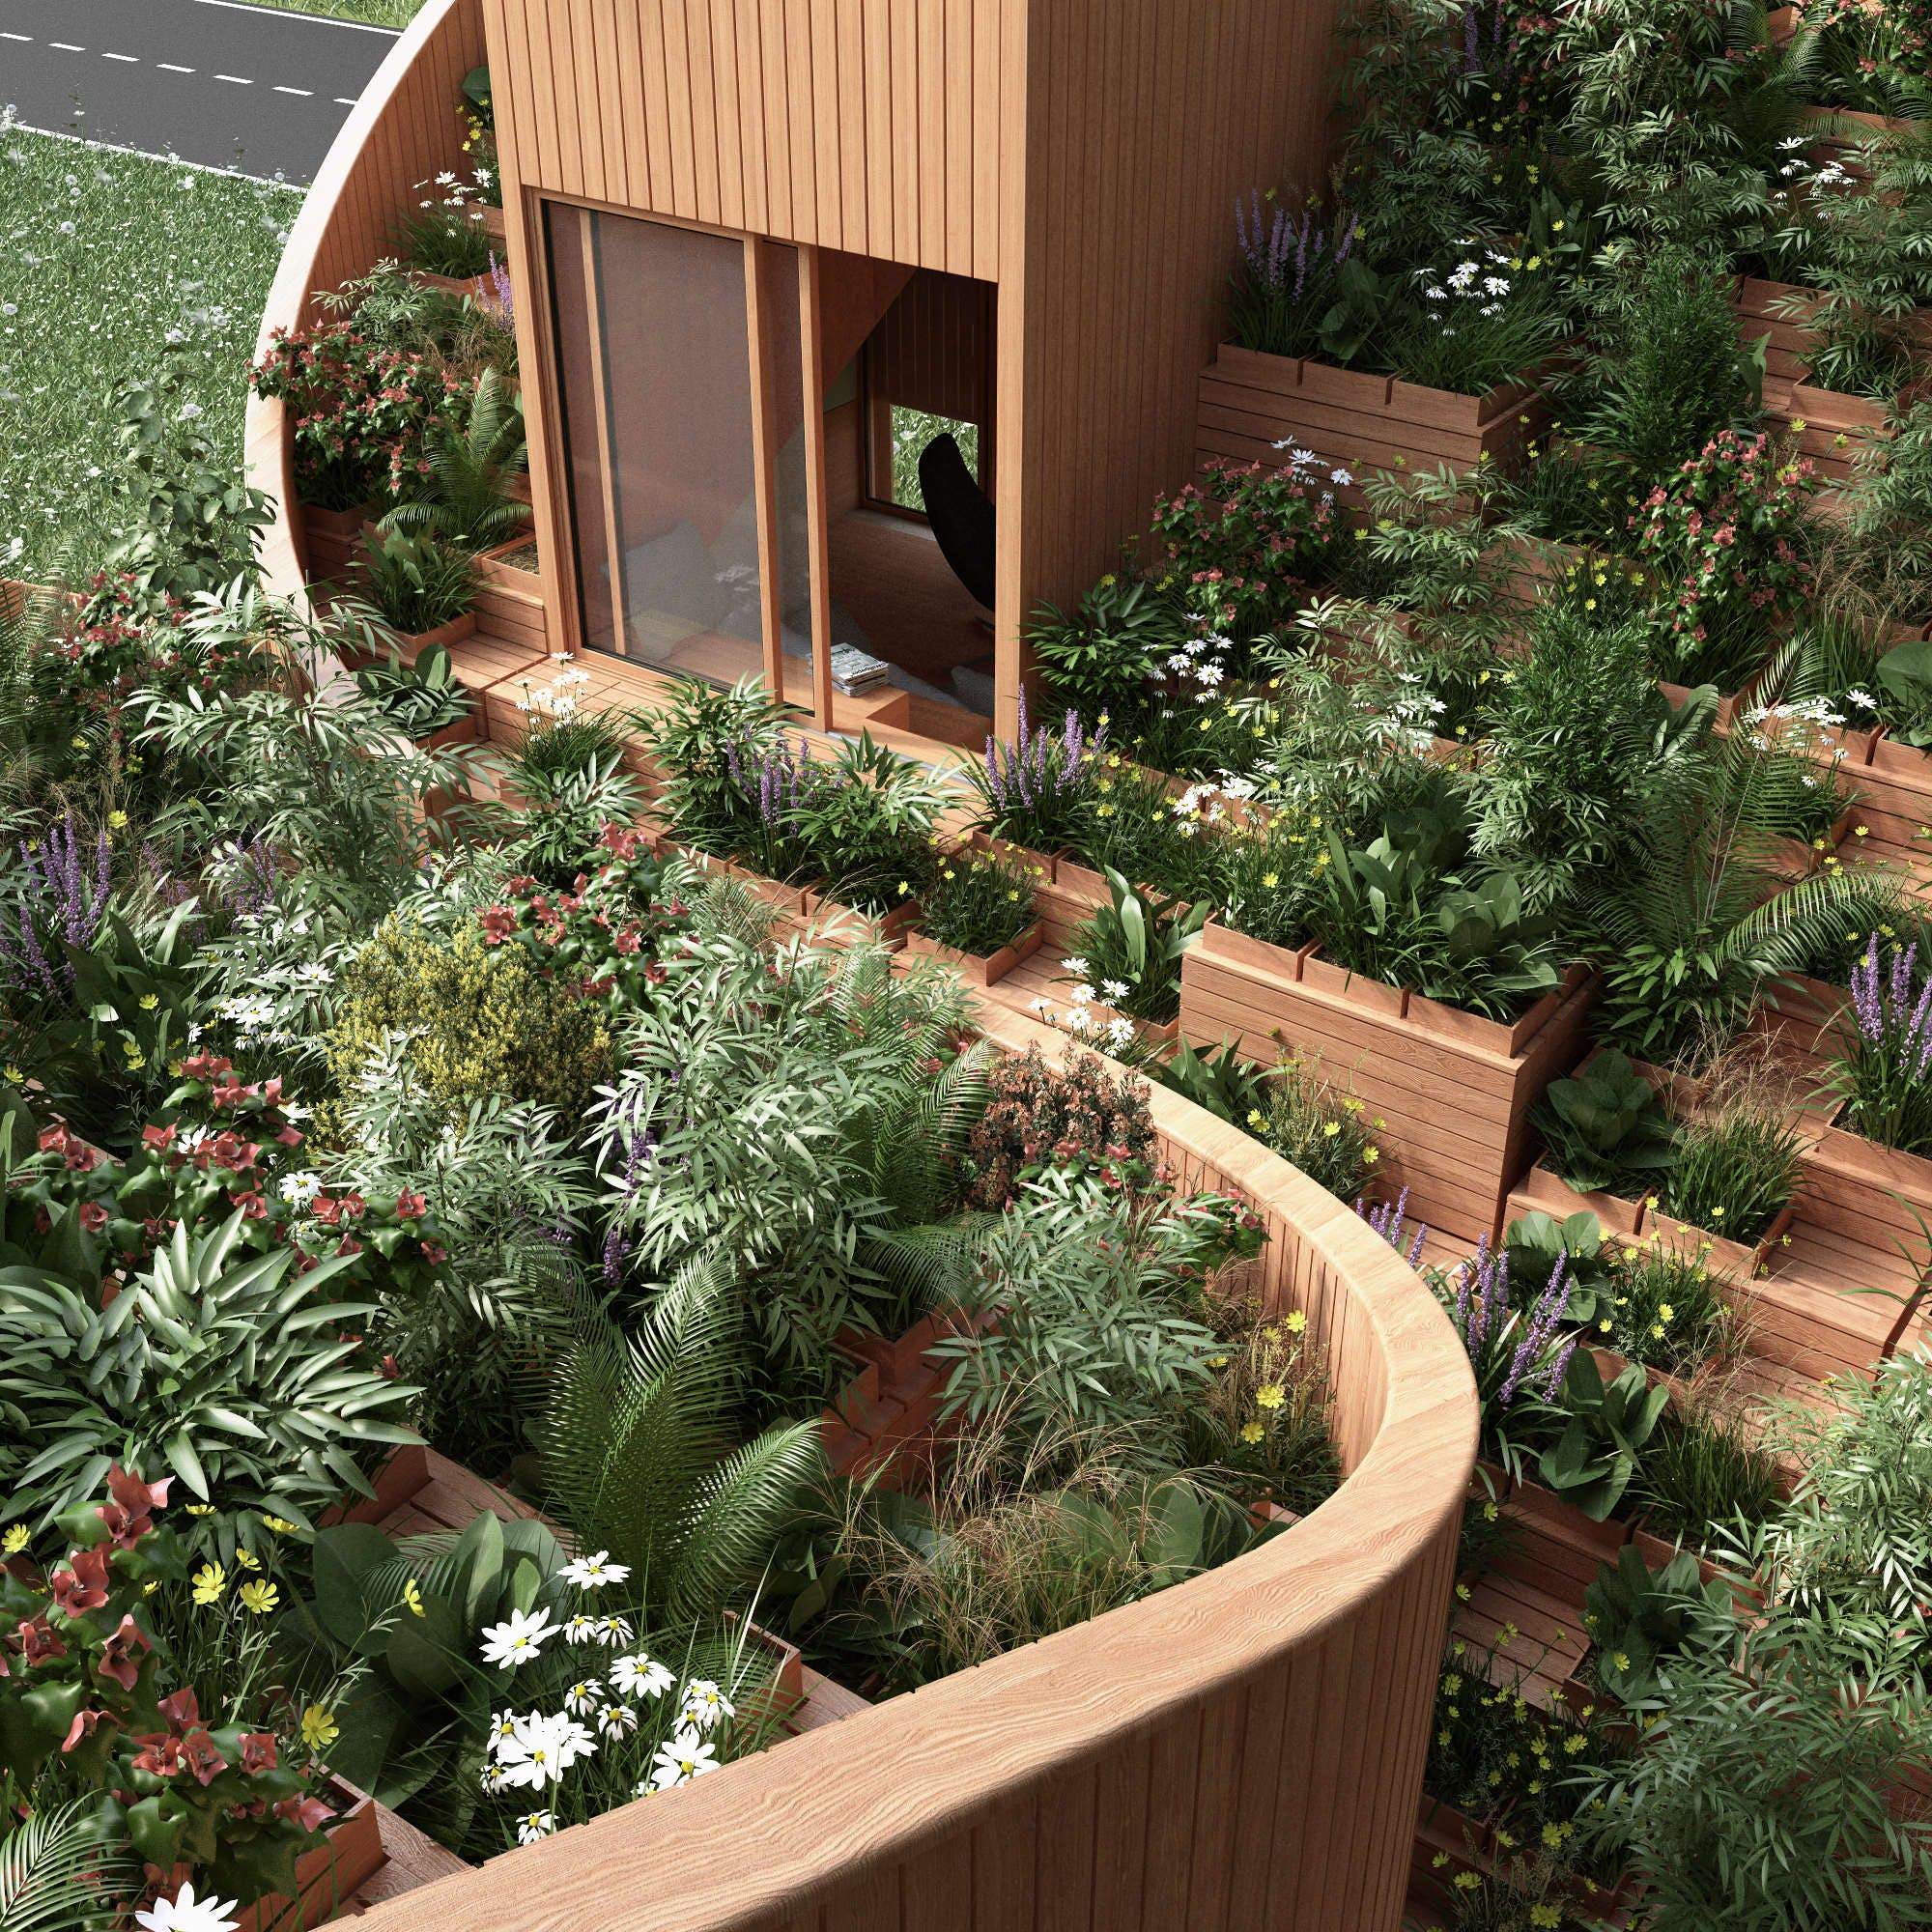 This self-sufficient home concept features a full garden on the roof -  Lonely Planet